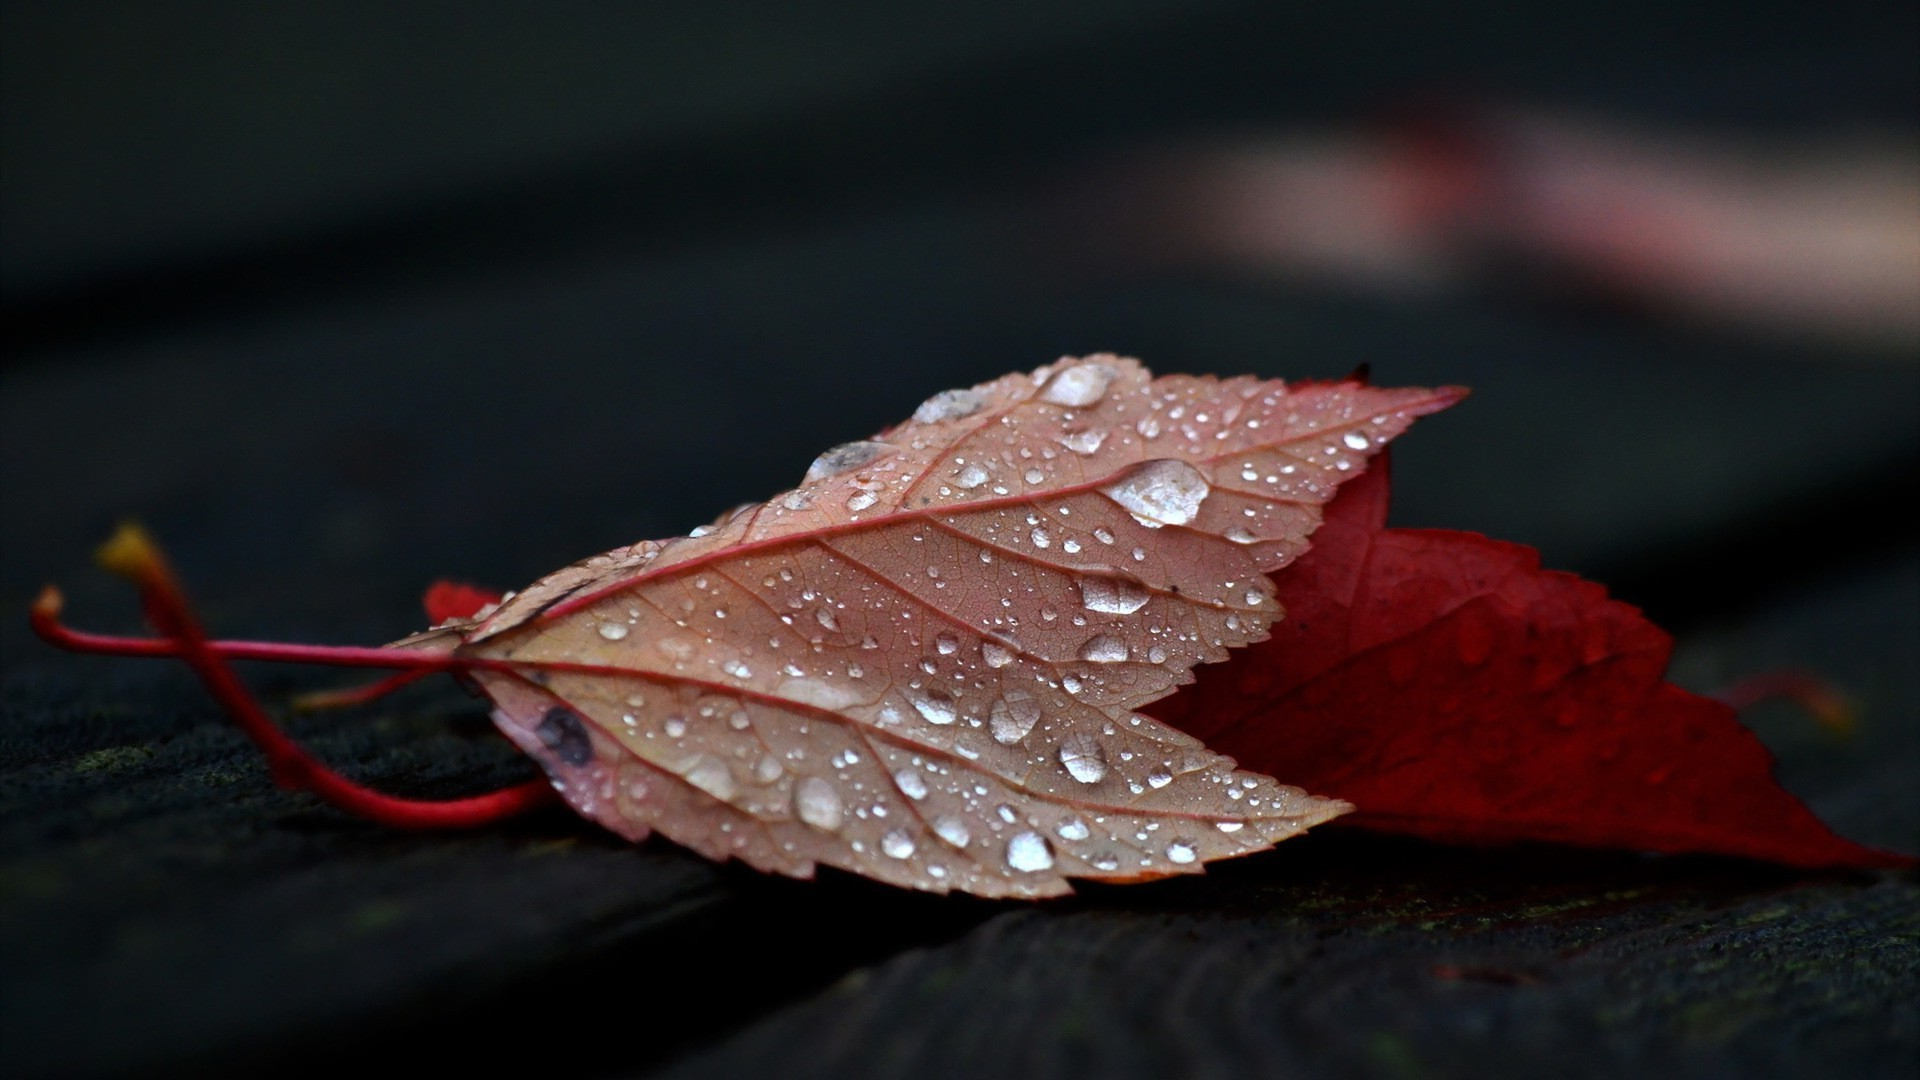 Live Wallpaper Fall Leaves Nature Leaves Fall Closeup Depth Of Field Wooden